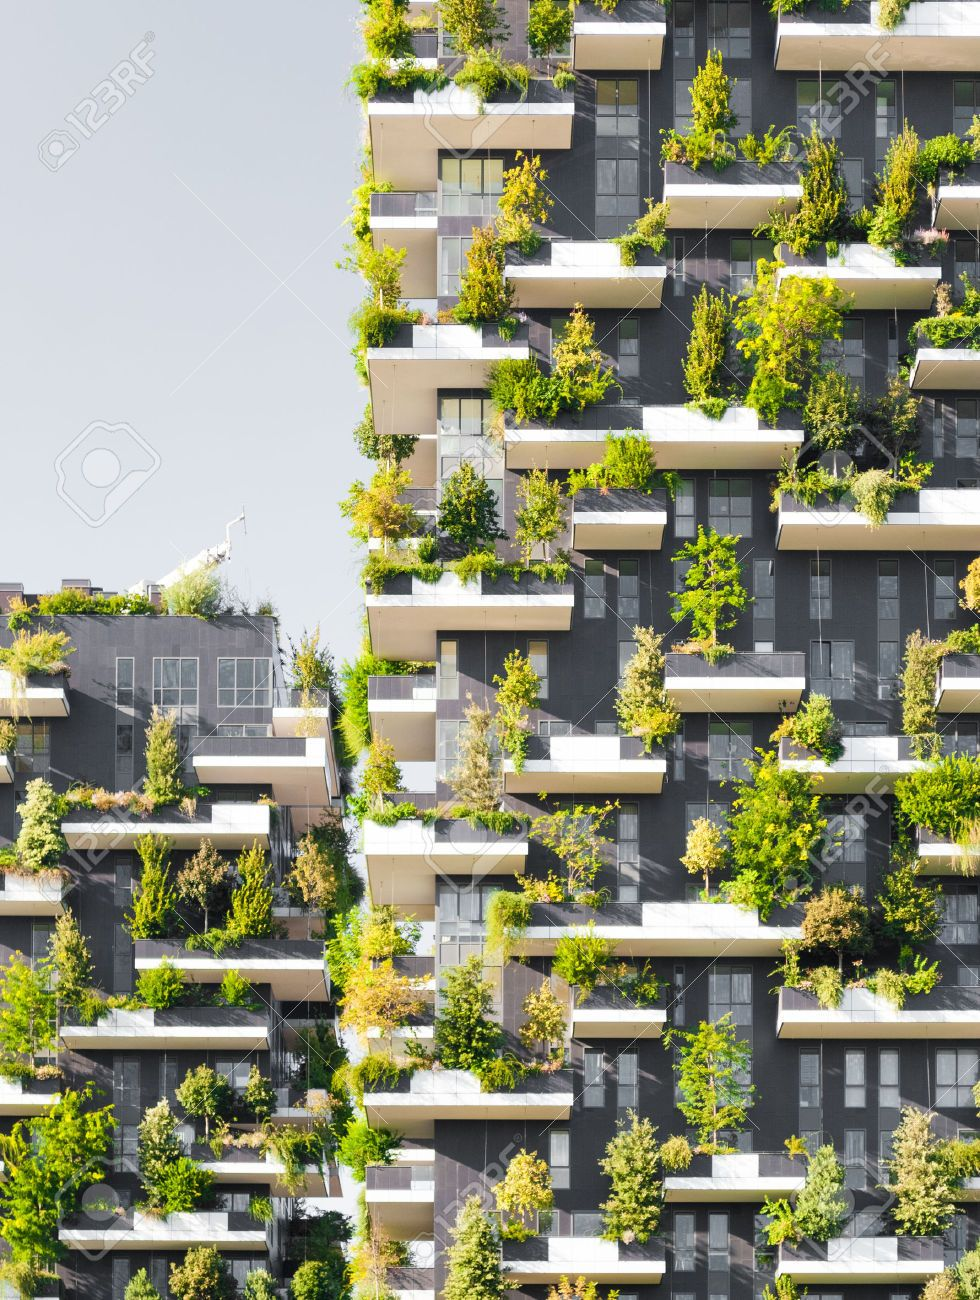 Stock Photo Vertical forest, Earthship, Residential complex